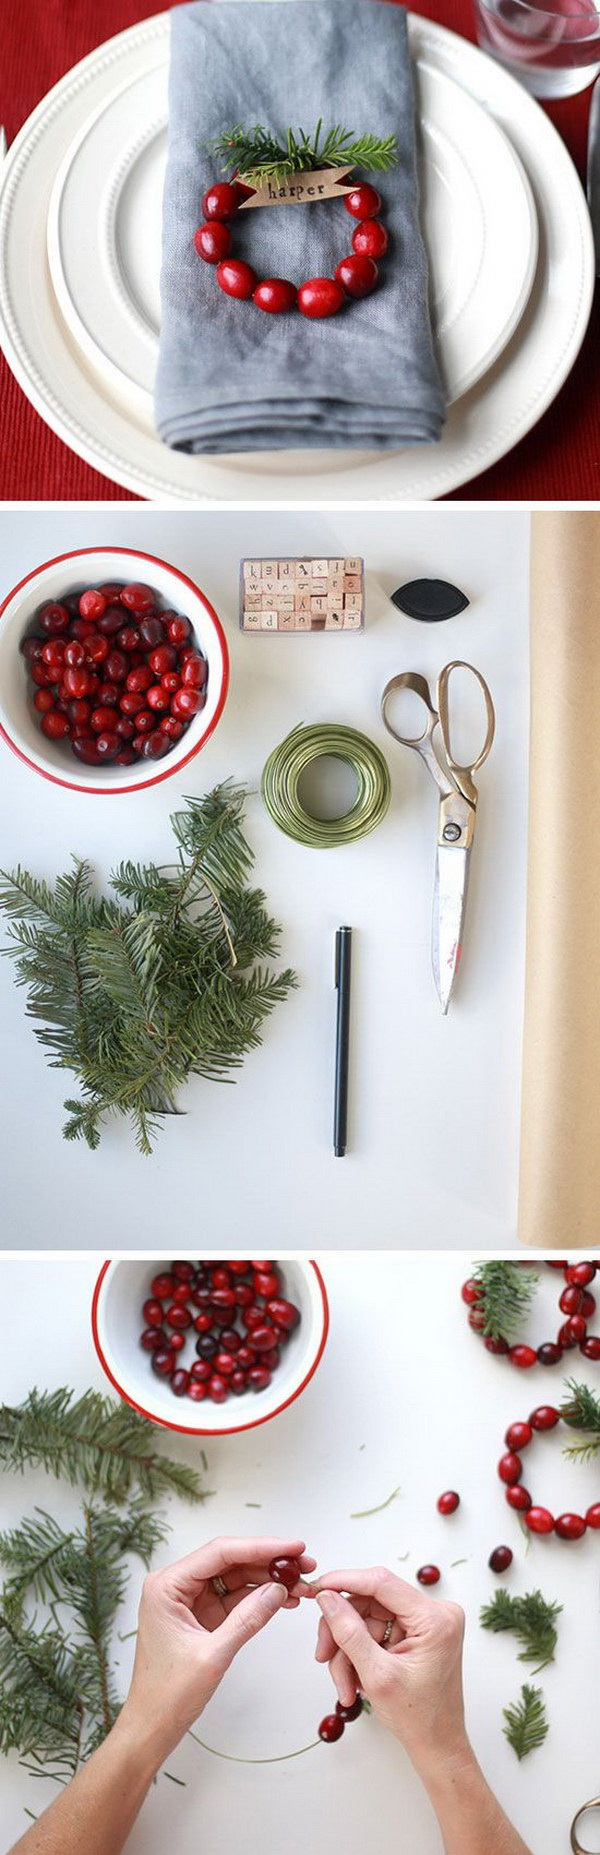 DIY Mini Cranberry Wreath Place Cards. These little mini cranberry wreaths are perfect and so sweet for entertaining for a Christmas or Thanksgiving party.